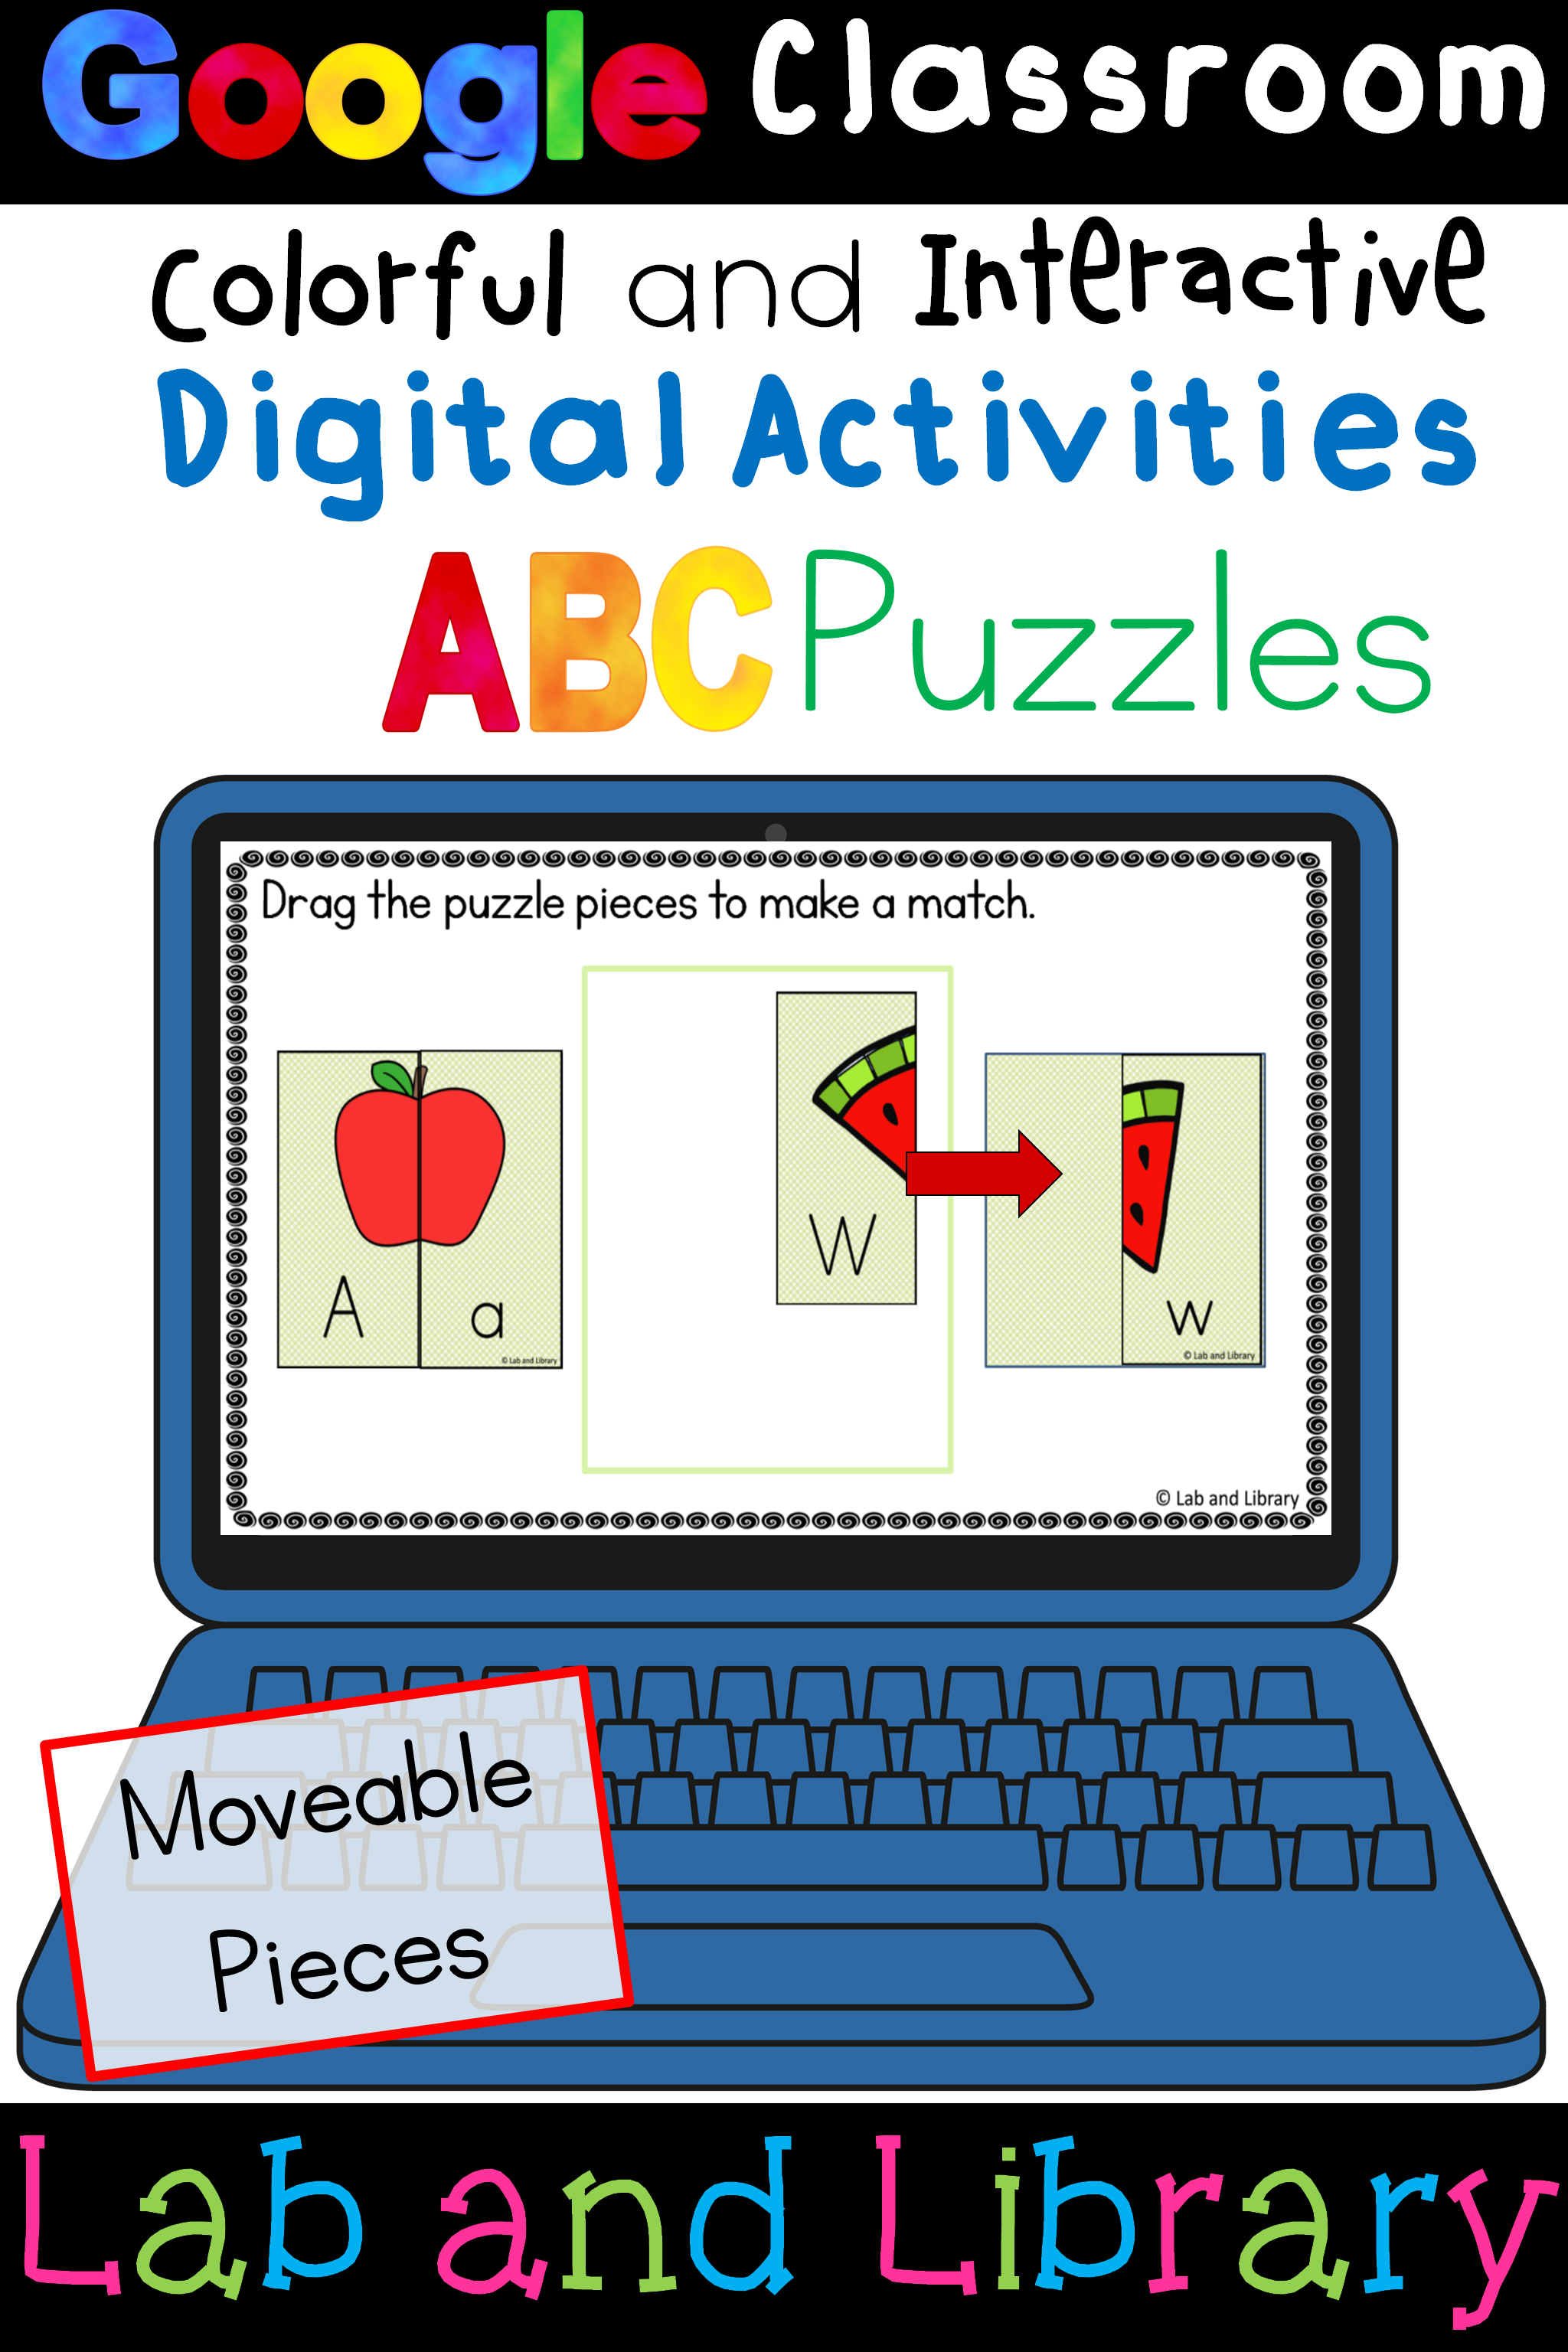 Abc Puzzles Digital Activities For Classroom